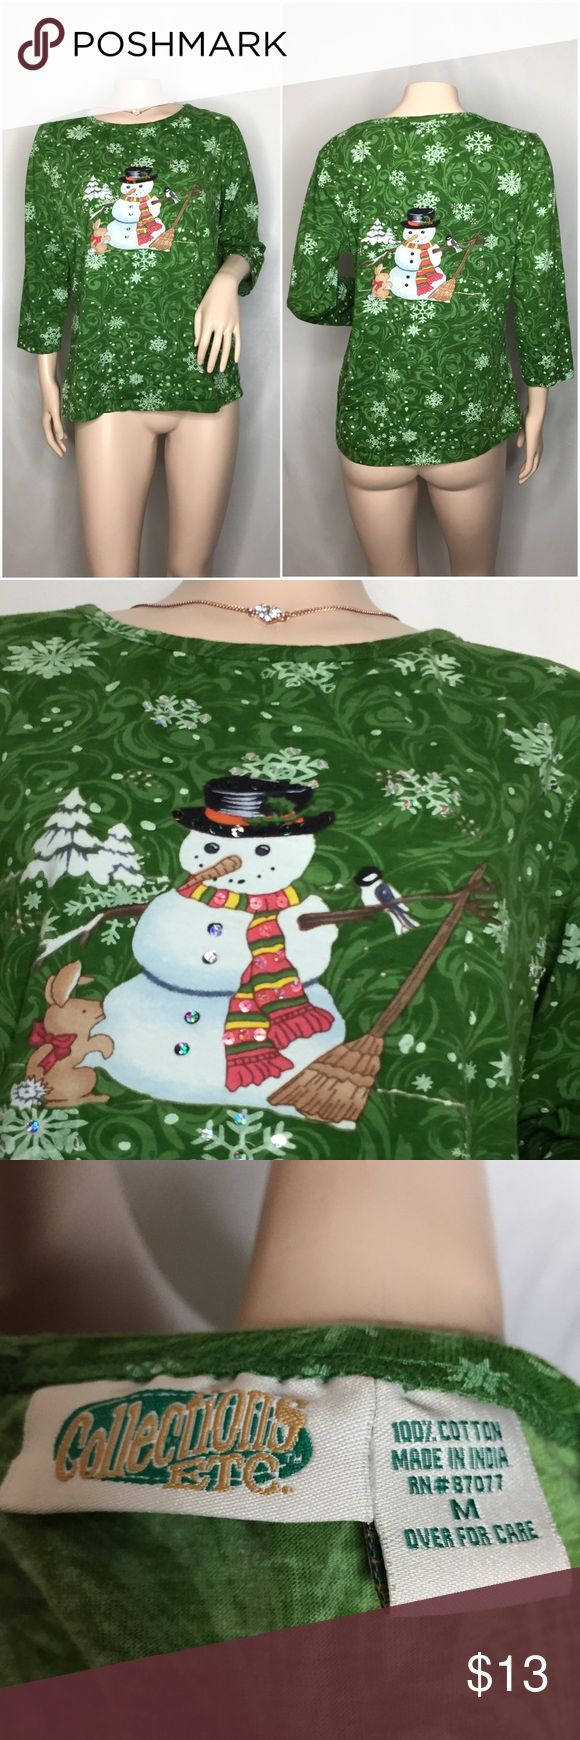 Holiday Shirt 🎄❄️ Diamond covered in Front💎 Cute Christmas shirt ☺️ As the holidays approach very very quickly, this is perfect to add to the closet.... There is ton of diamonds on the design in the front☃️❄️🎄 • GREAT CONDITION , collections ect. Tops